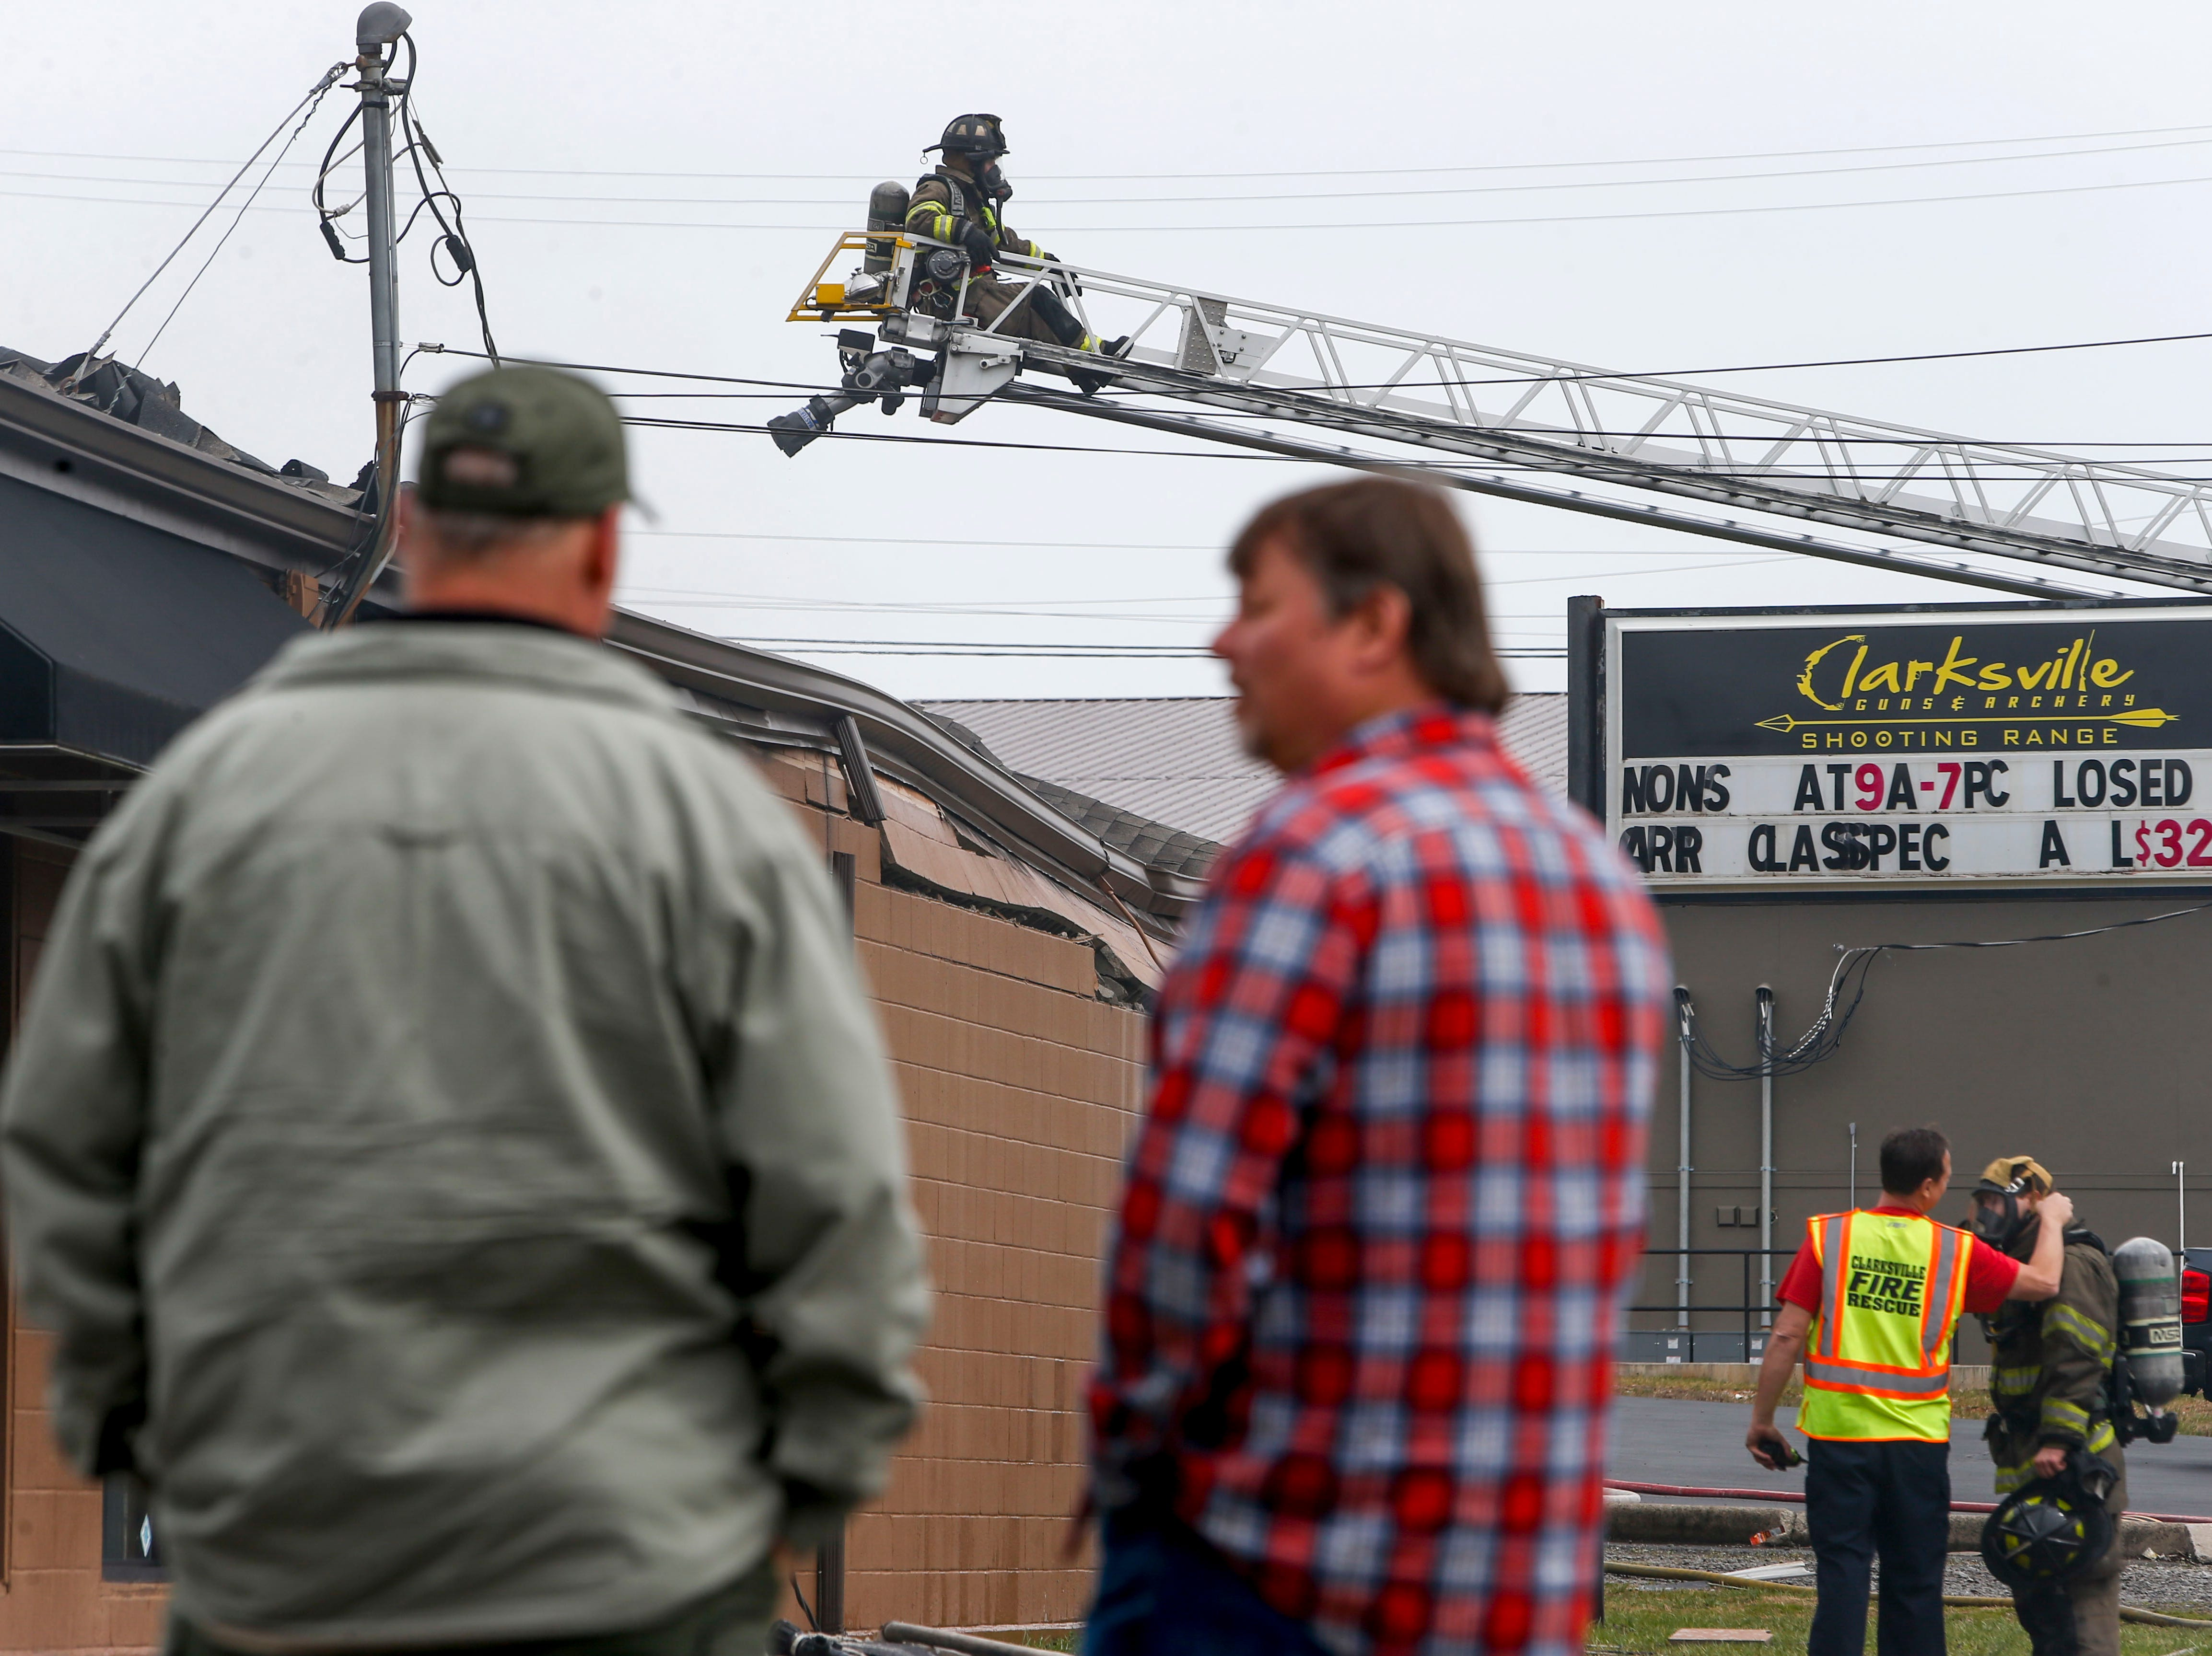 Bystanders chat with one another while Clarksville Fire Rescue works to put a fire out in the shooting range at Clarksville Guns & Archery in Clarksville, Tenn., on Tuesday, March 12, 2019.